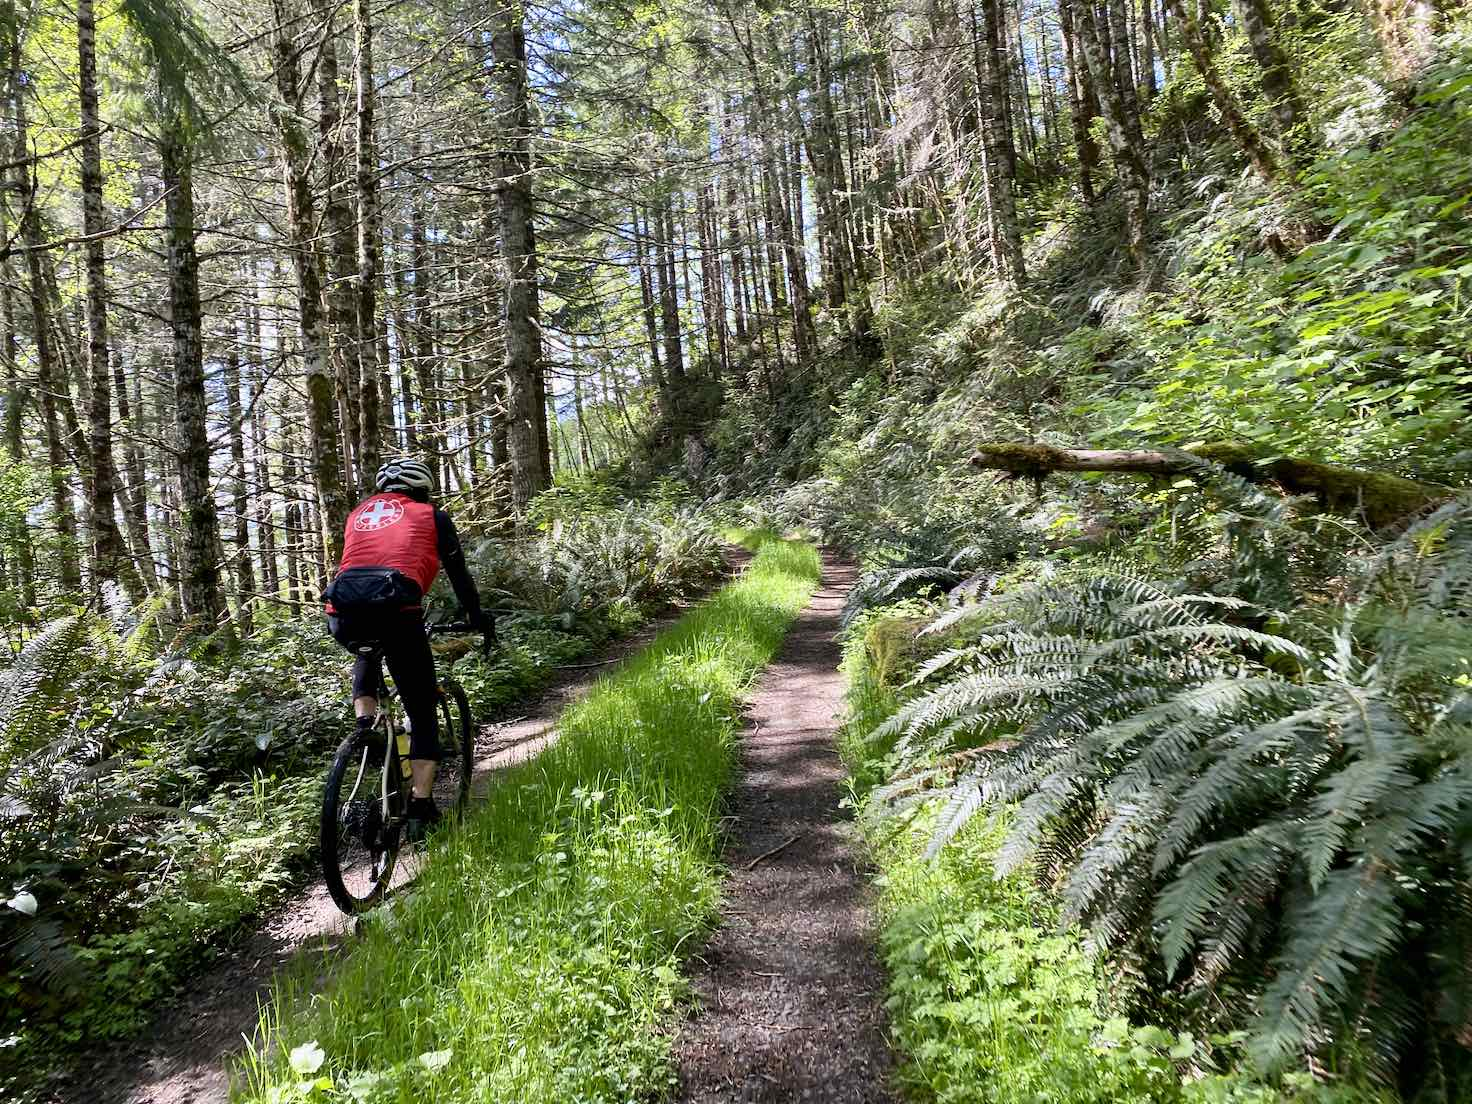 Cyclist on recreation road allowed by Hancock Forest Management.